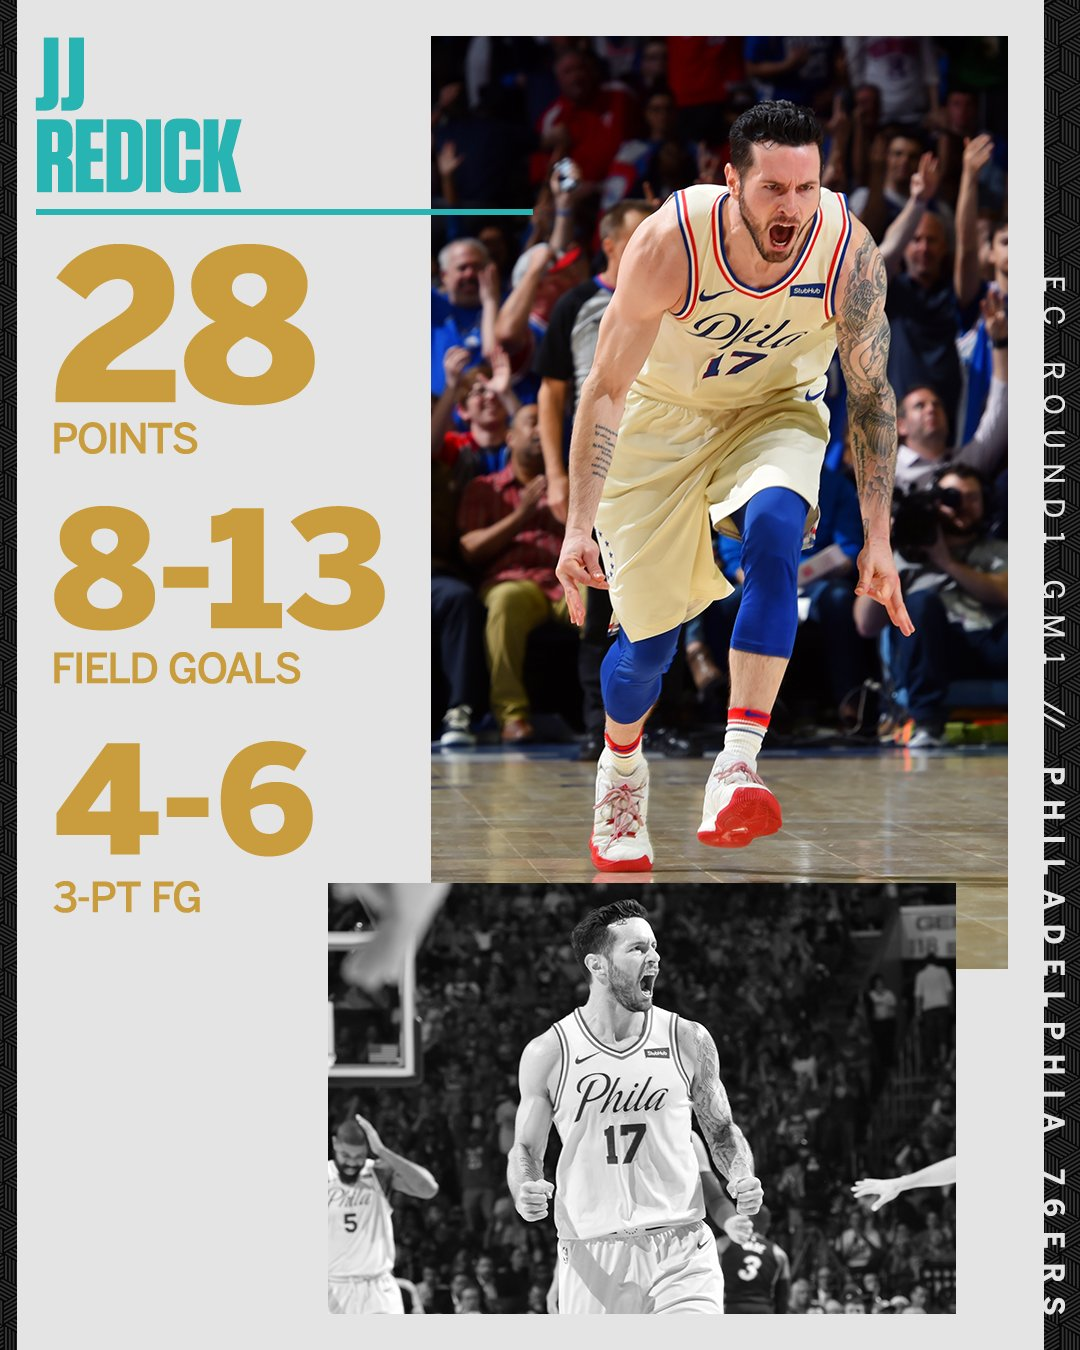 JJ Redick wasn't messing around tonight �� https://t.co/KpWz6vjrZJ